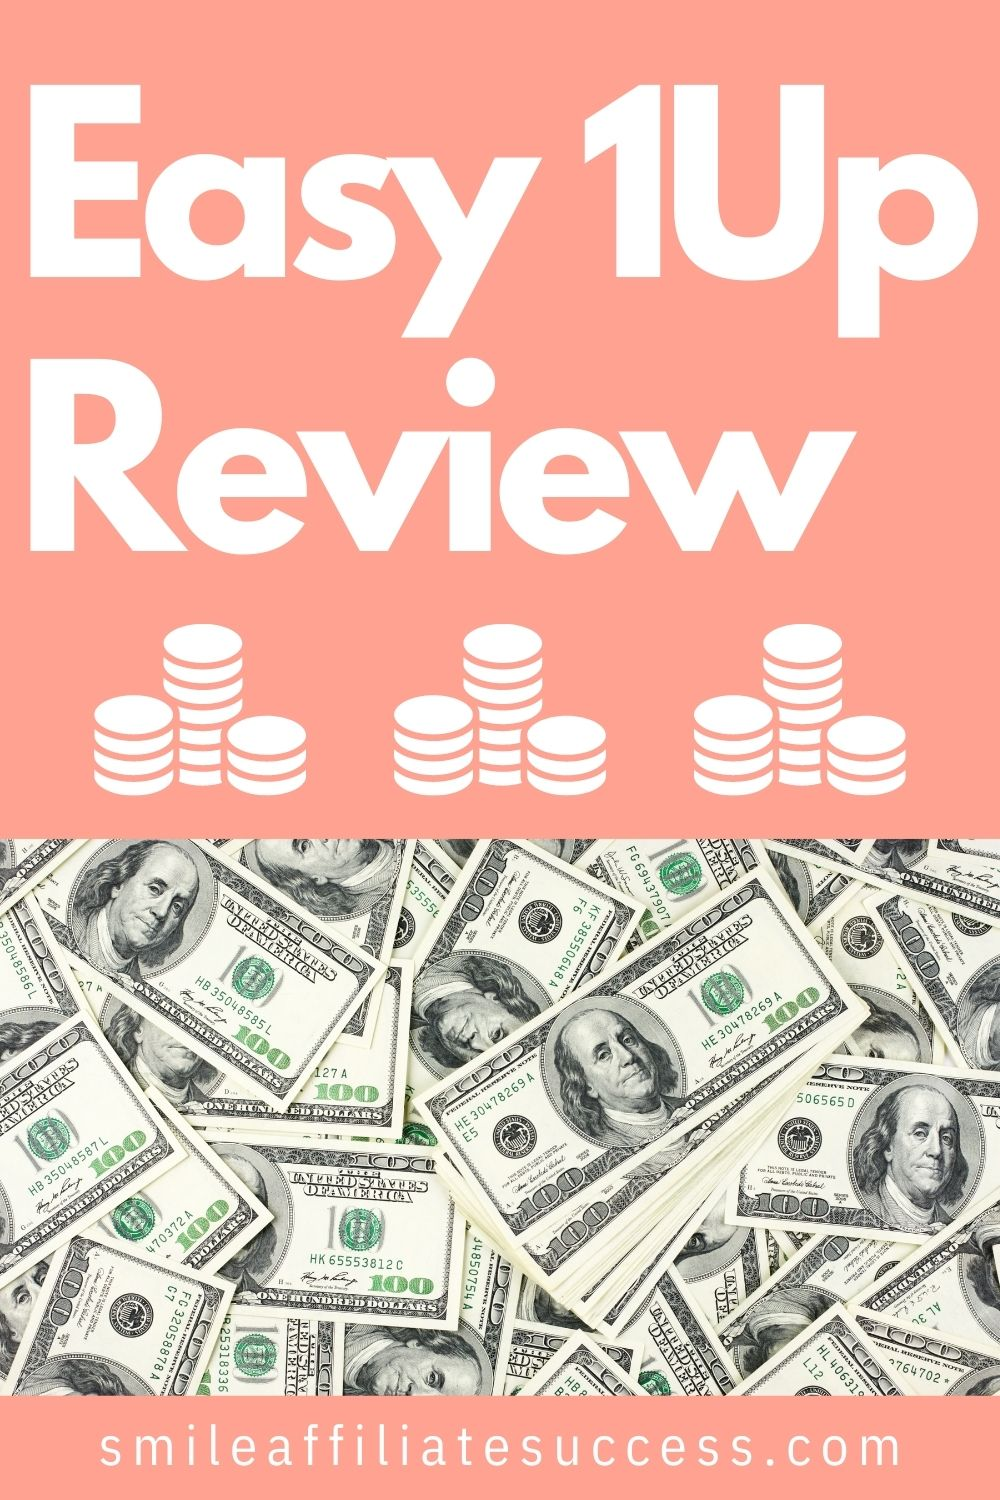 Easy 1Up Review - Legit or Scam?